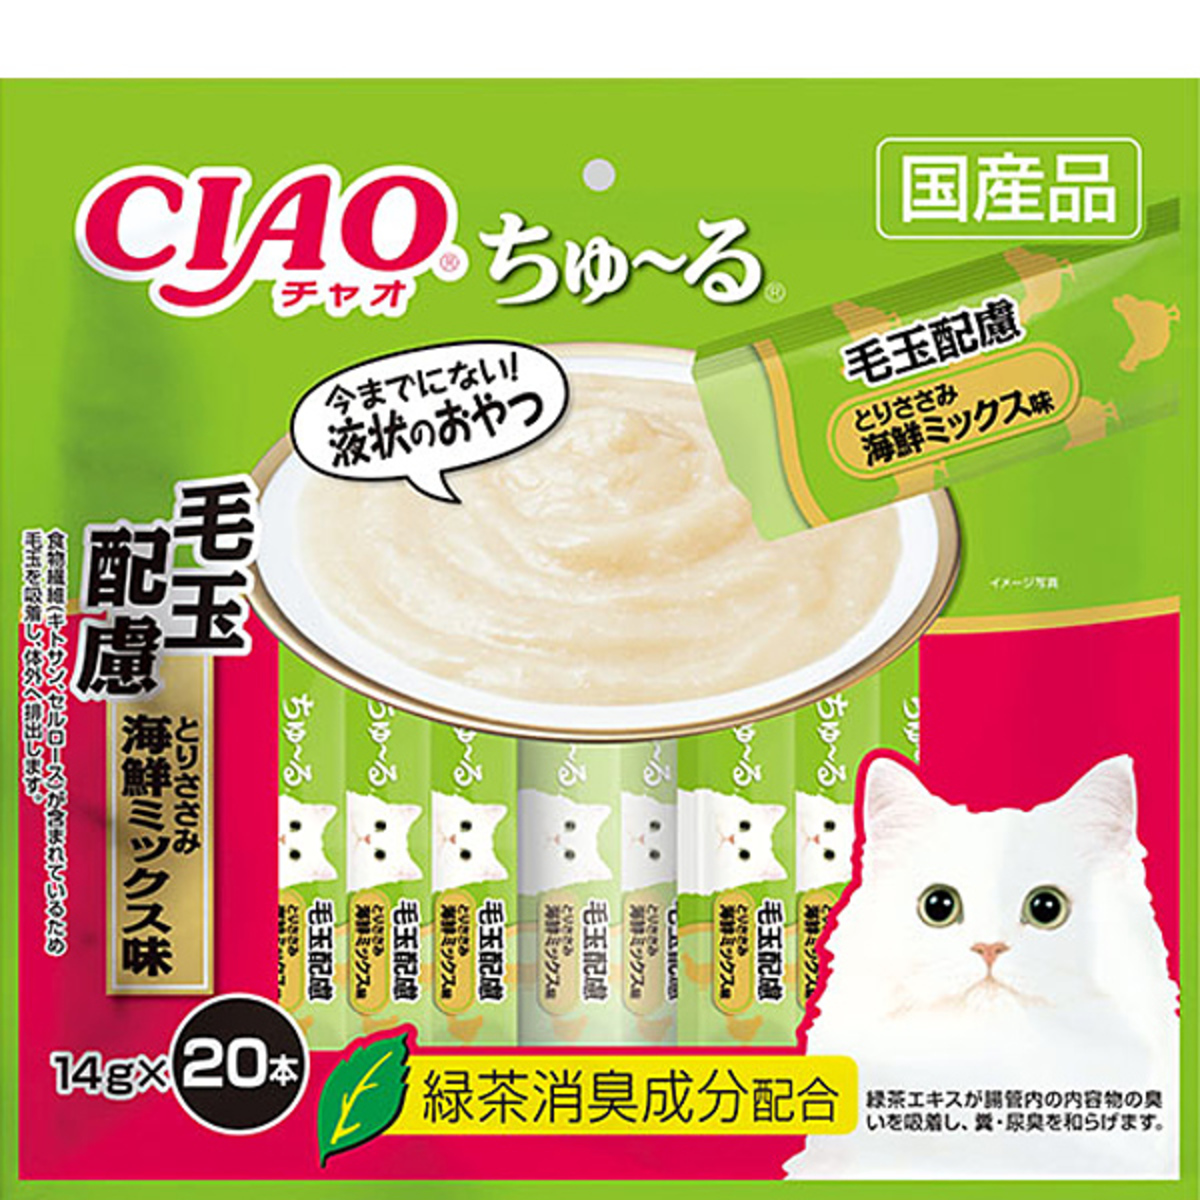 Chicken and Seafood mixed Cream Soup 14g x 20 (Hairball Control) [Parallel Import Product]